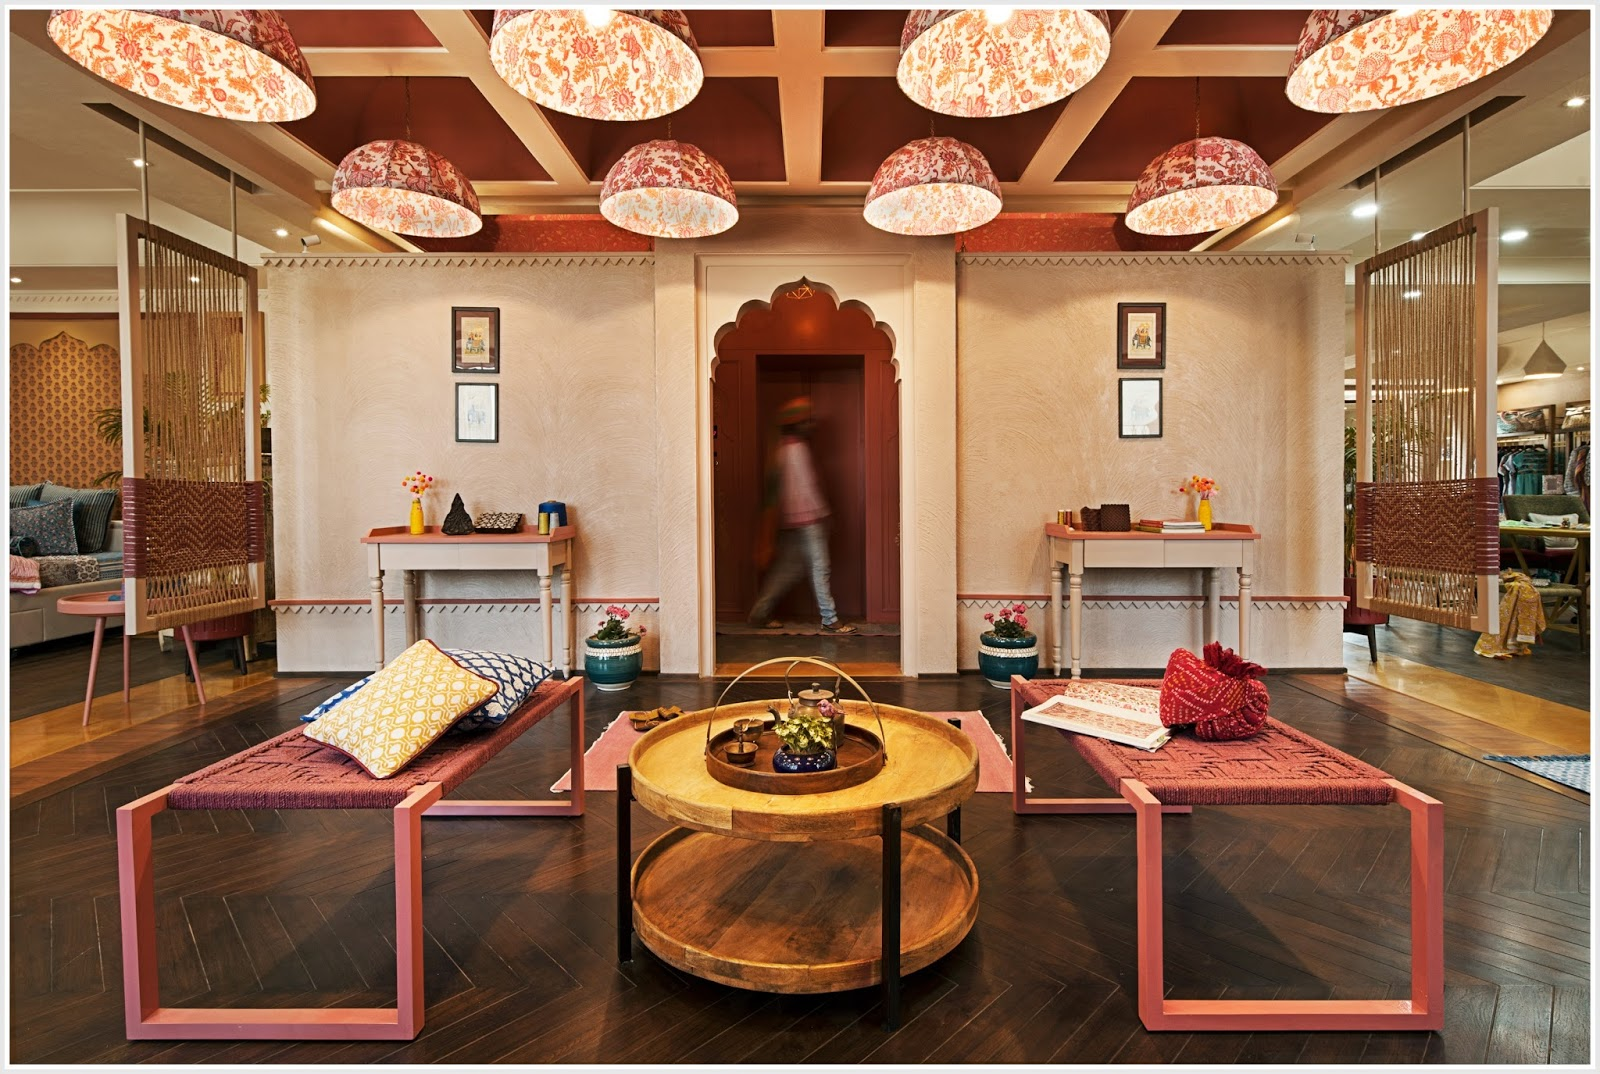 Located On The Third Floor Of Mr. Ankitu0027s Factory, Project Riwaayat Is A  3100 Sq. Ft. Display Space That Encompasses Two Entrance Lobbies, ...